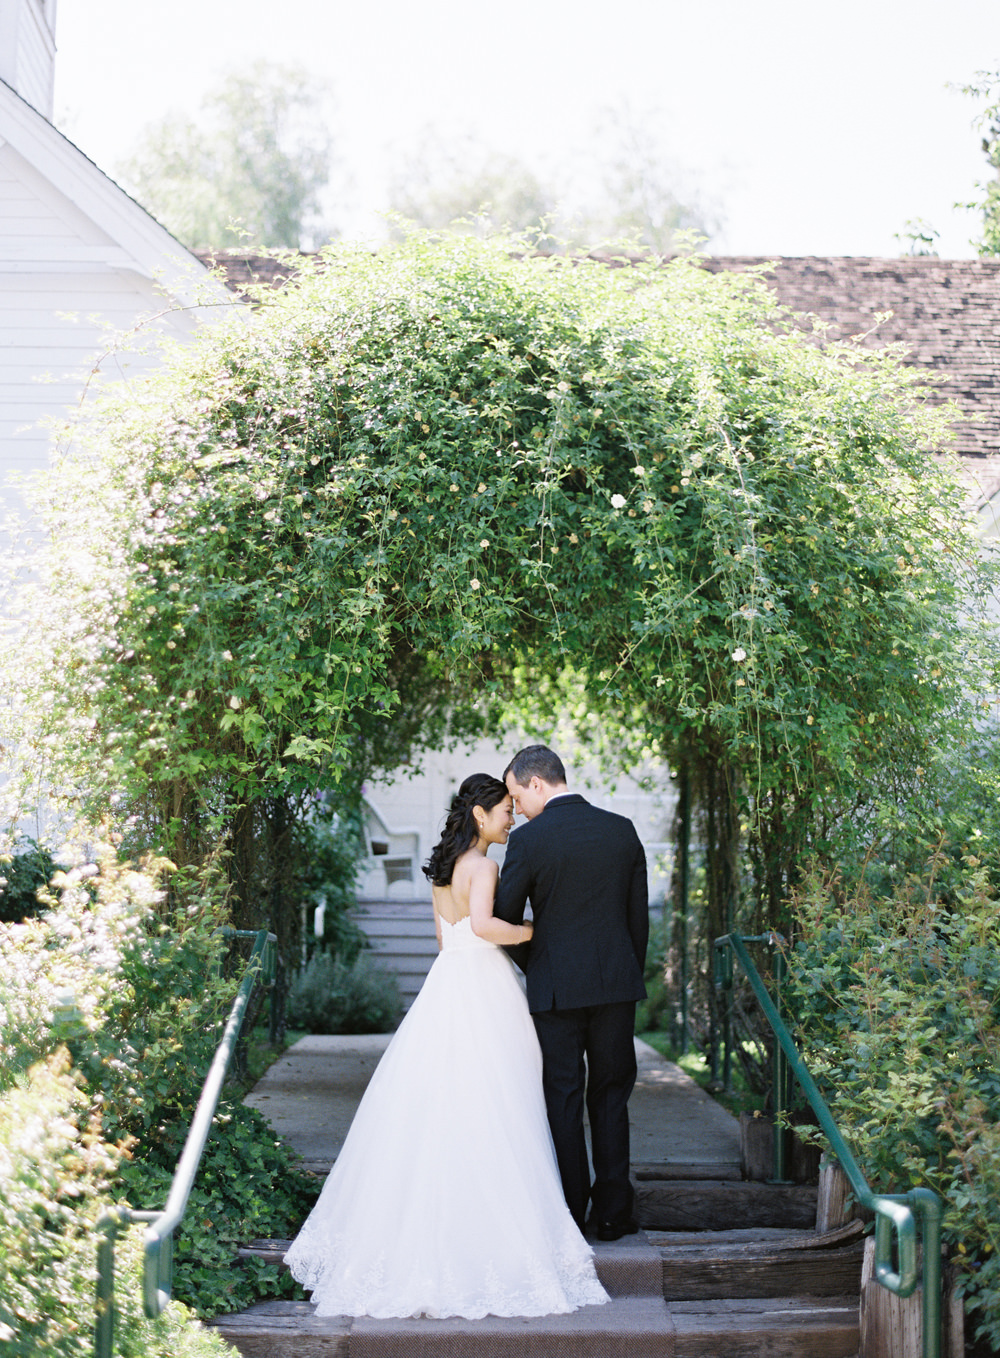 RomanticGardenWedding_WhiskersandWillow_048.jpg